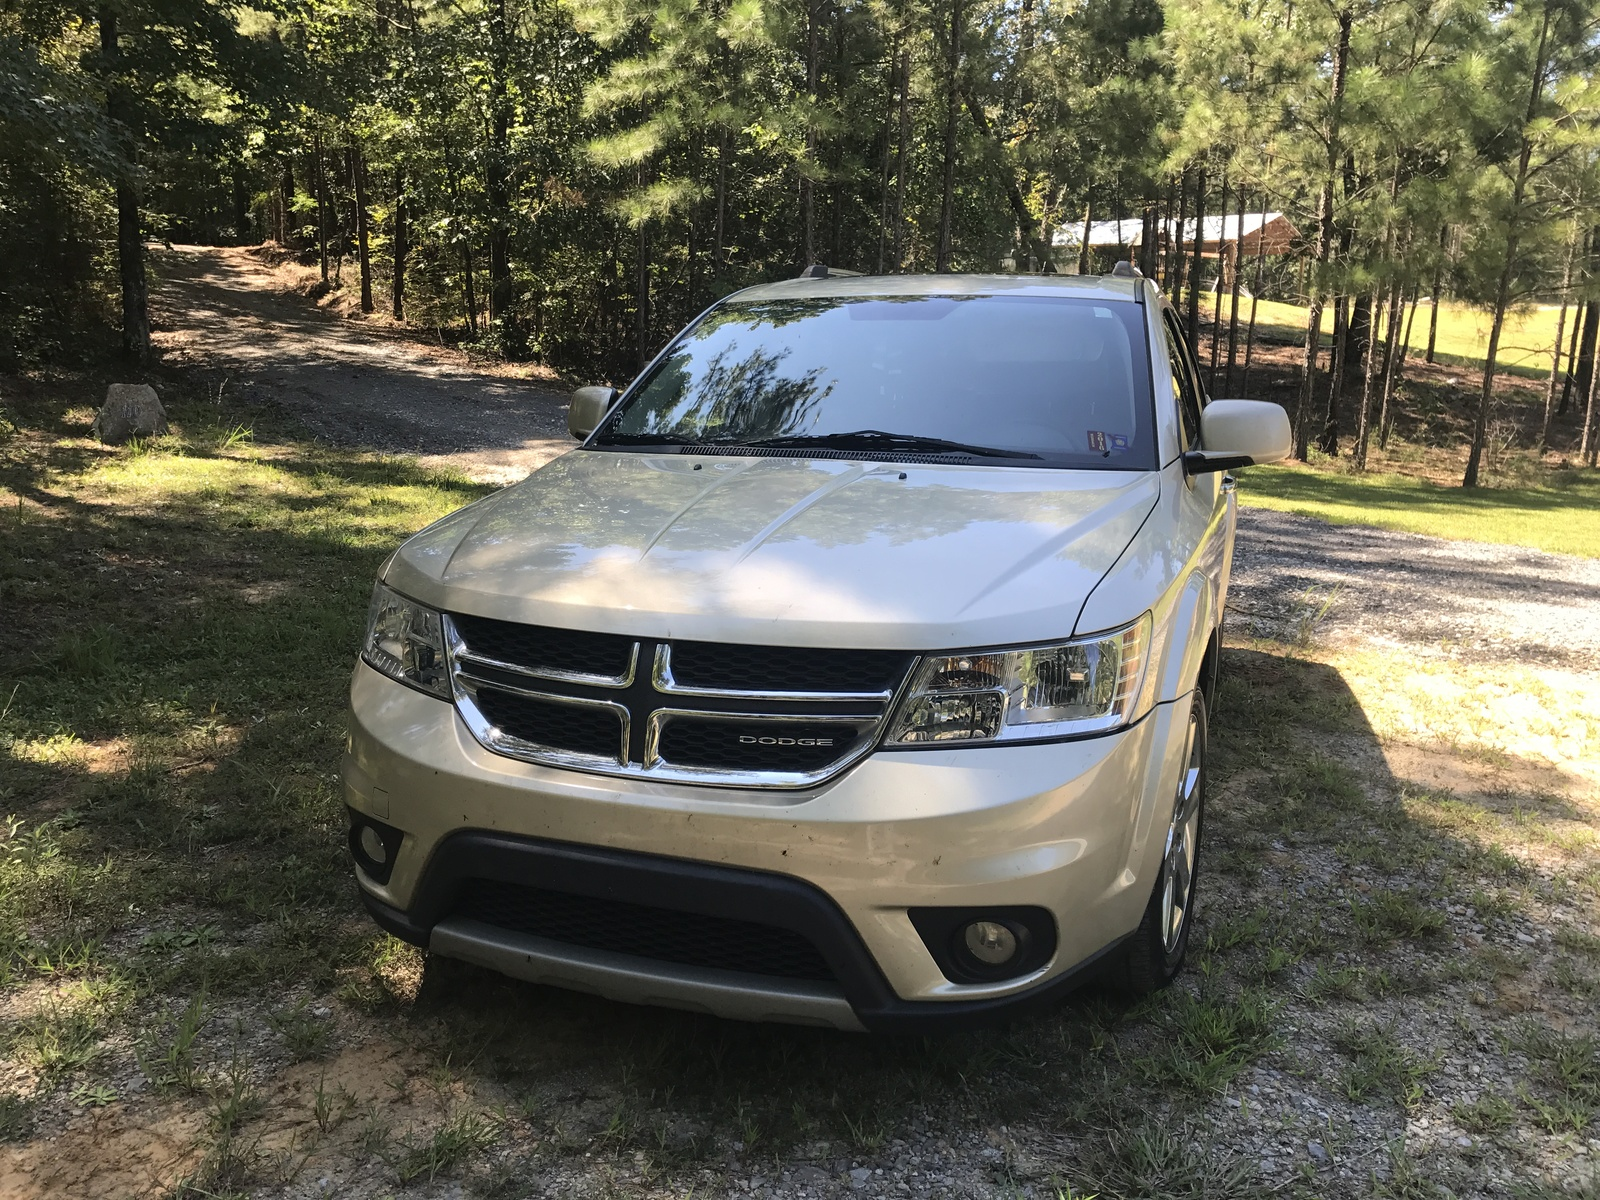 2011 dodge journey overview cargurus publicscrutiny Image collections